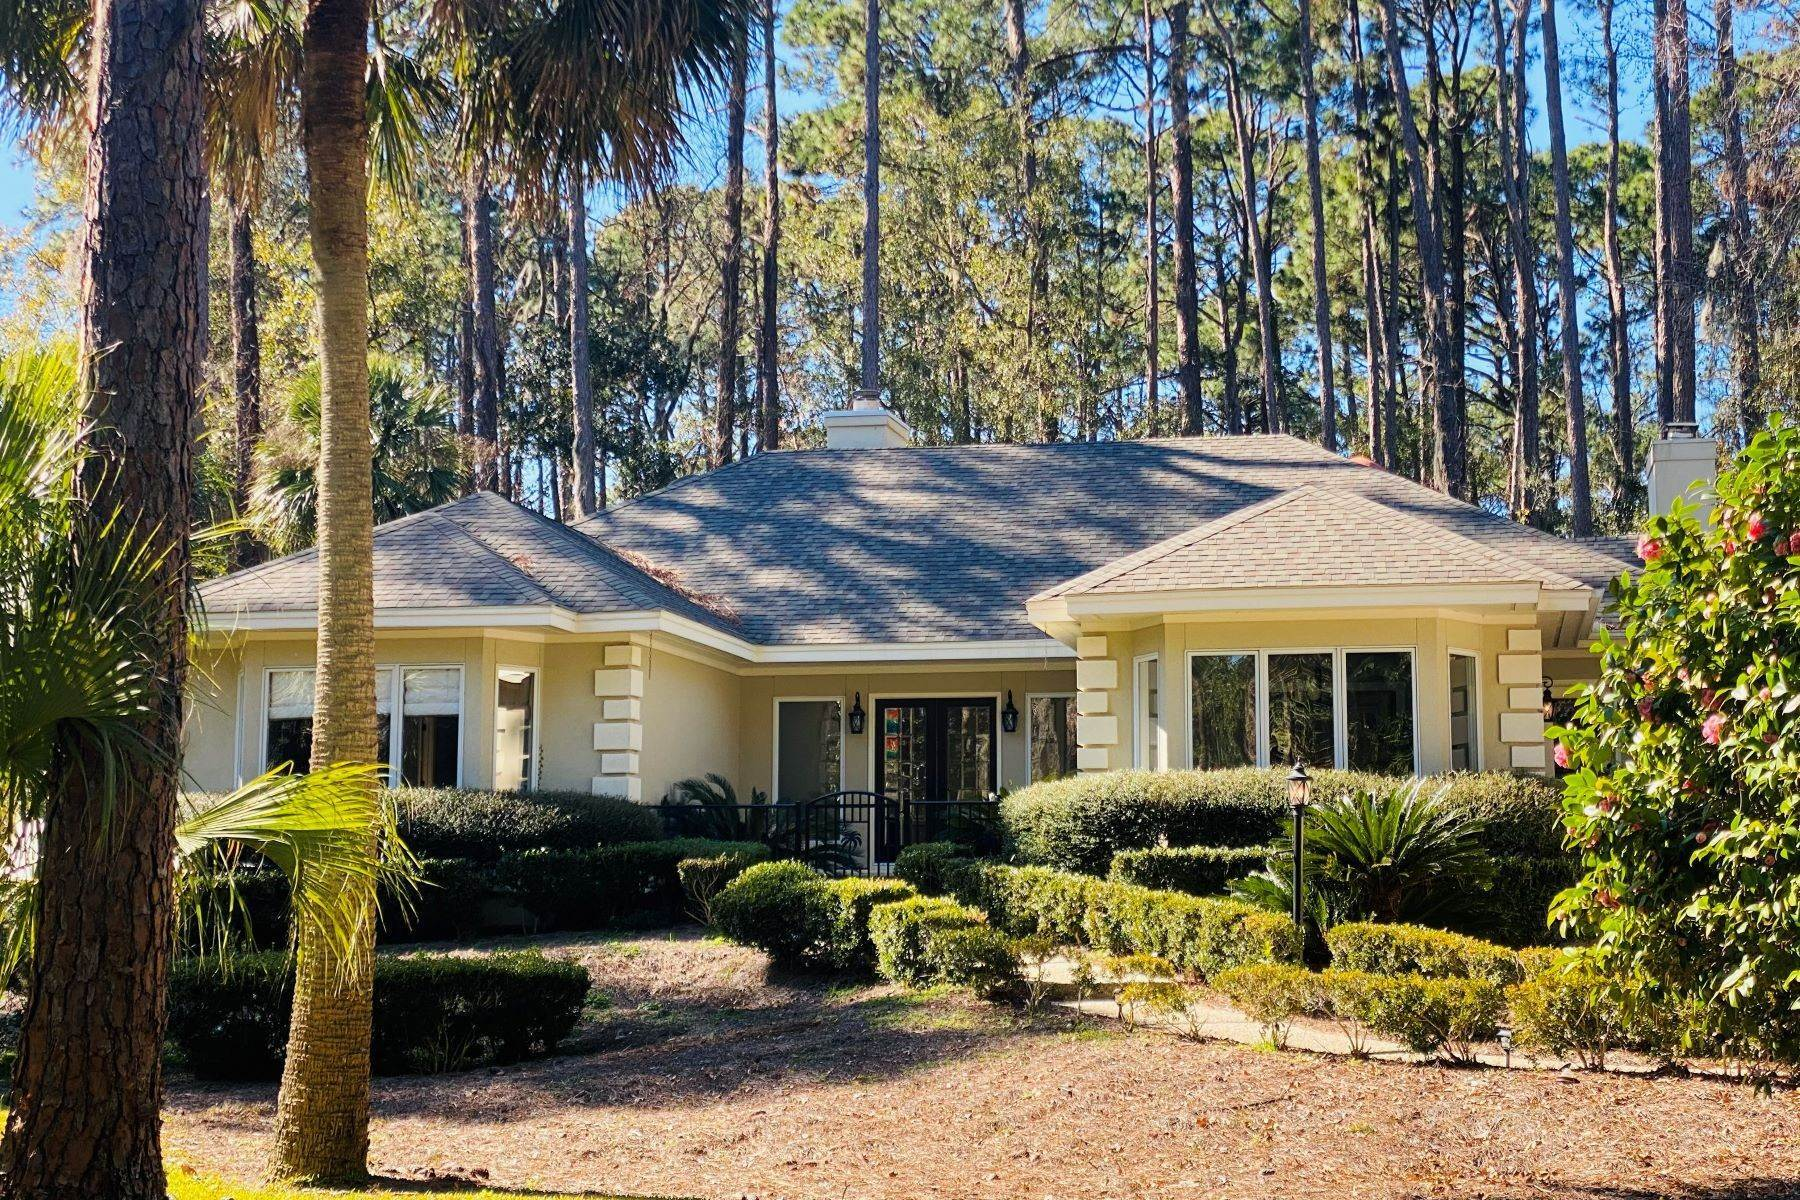 Single Family Homes for Sale at 1 Hobnoy Court Hilton Head Island, South Carolina 29928 United States